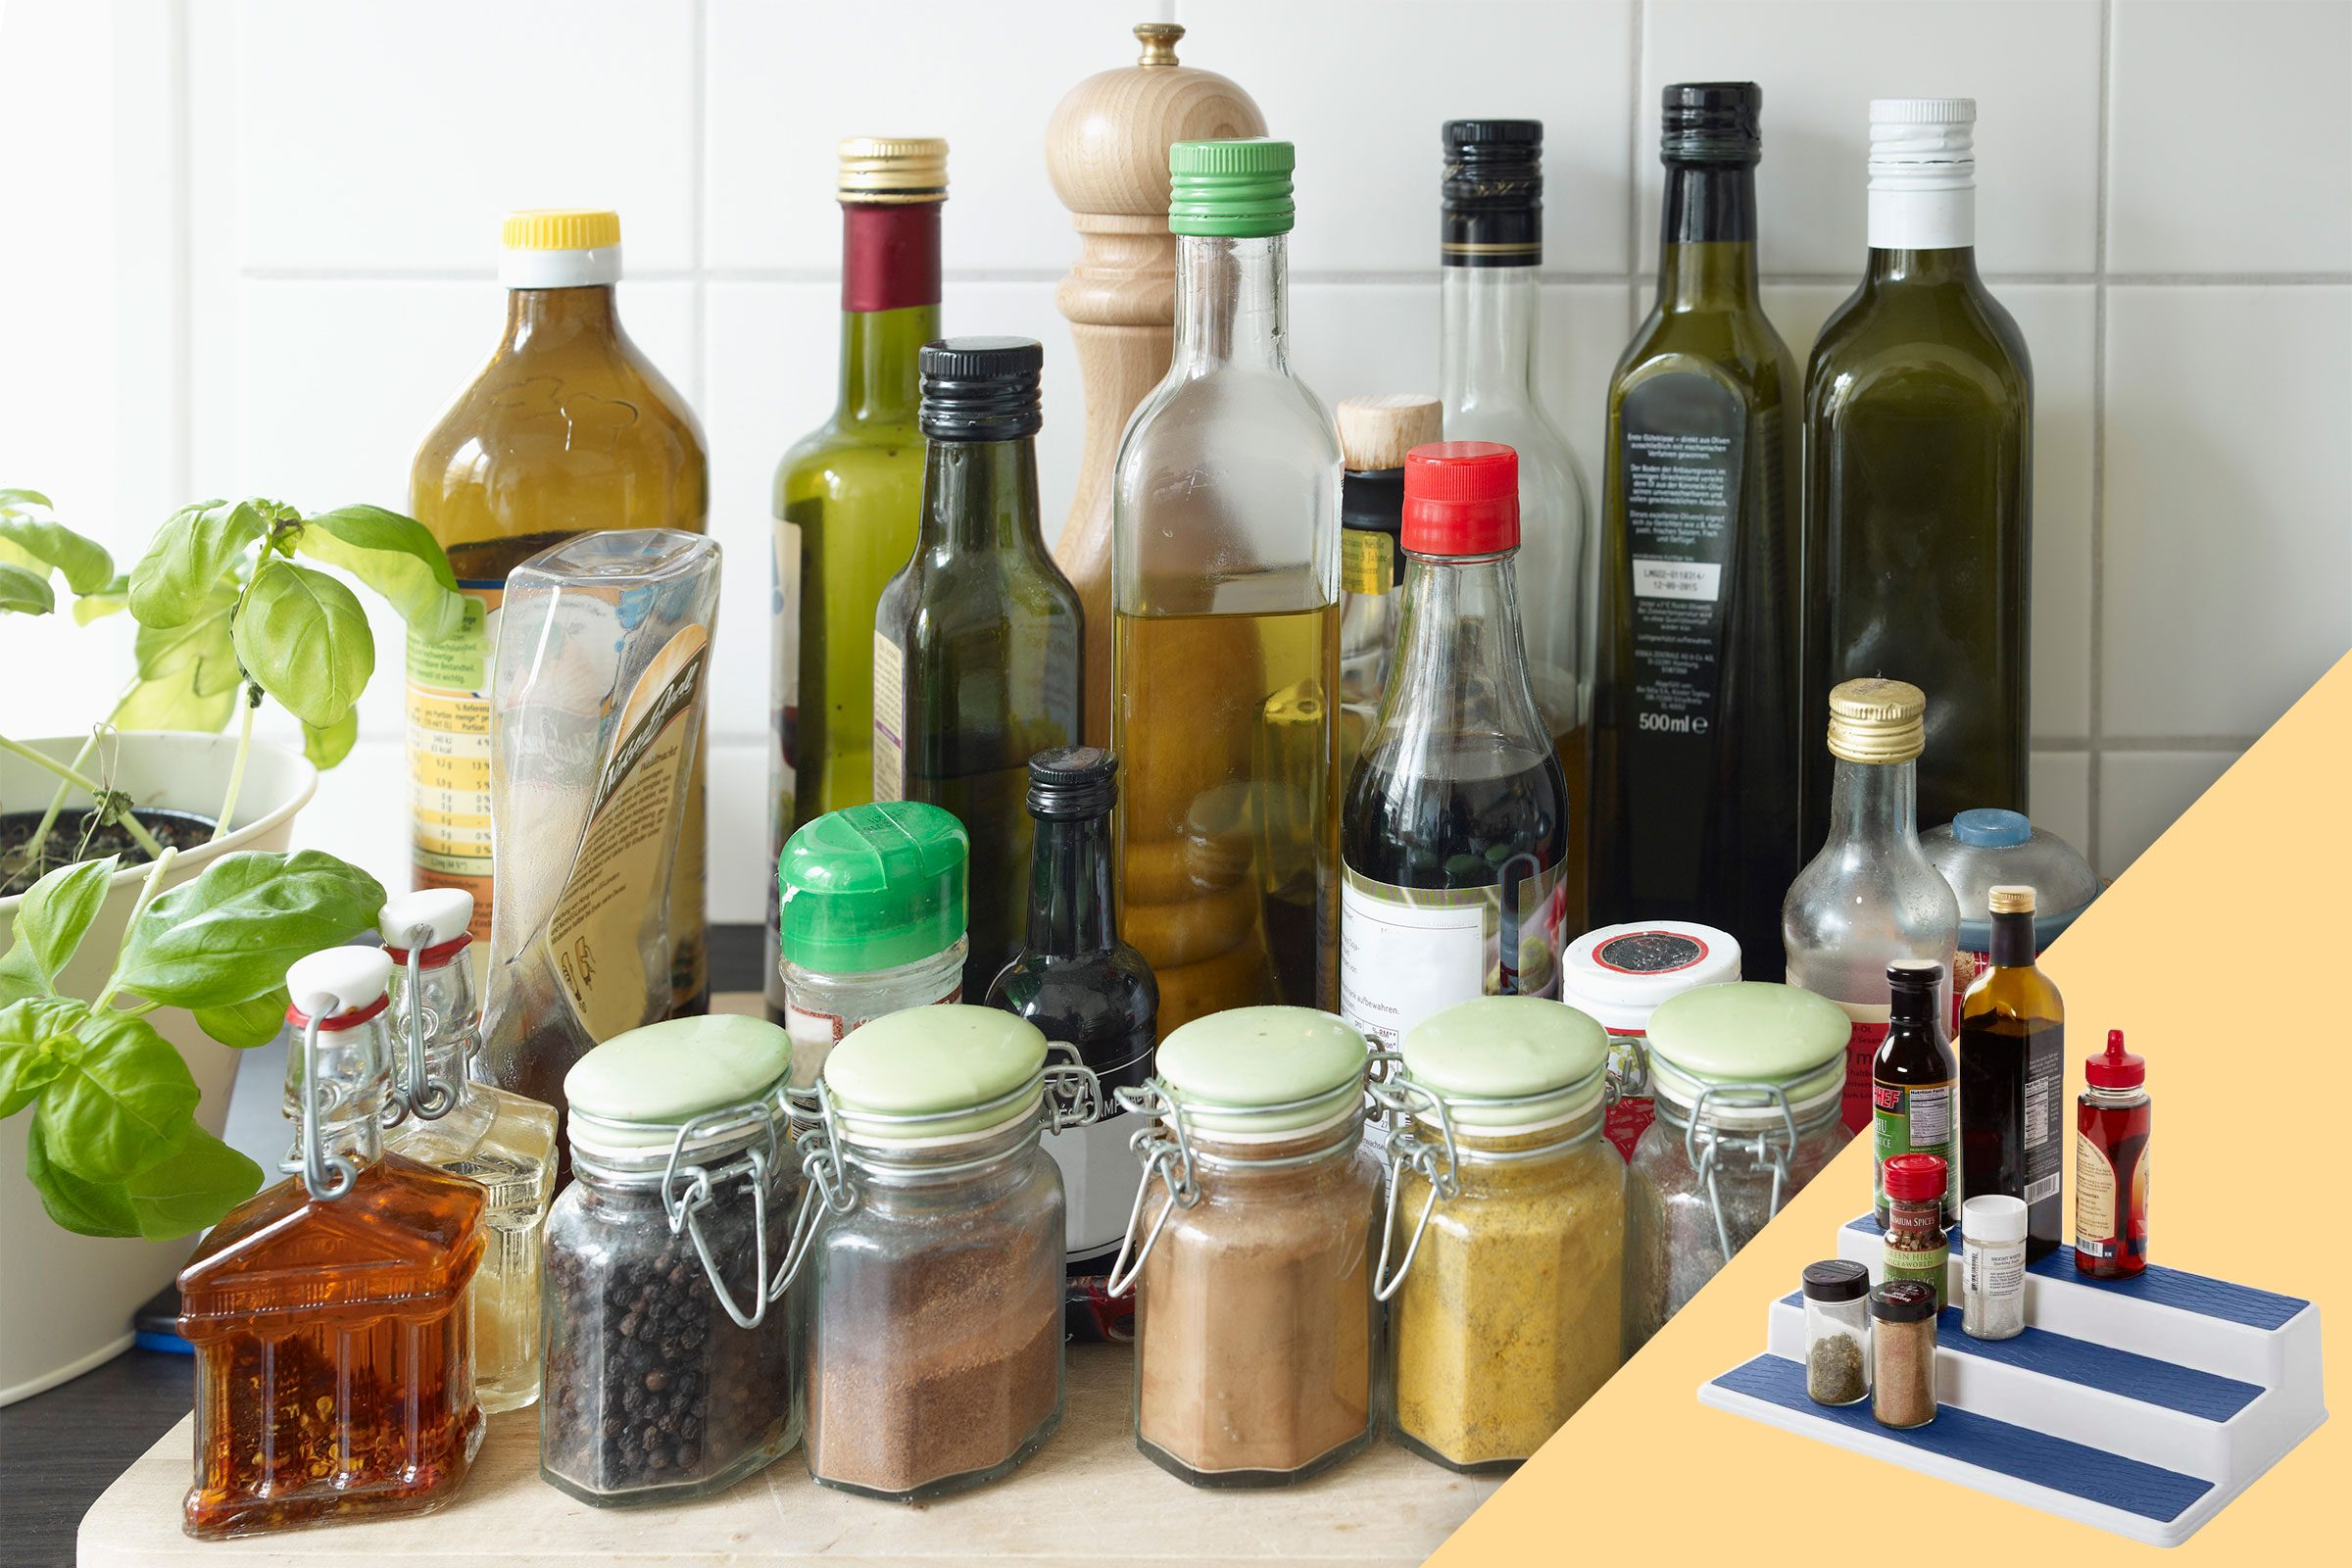 spices and bottles on the counter; with suggested product